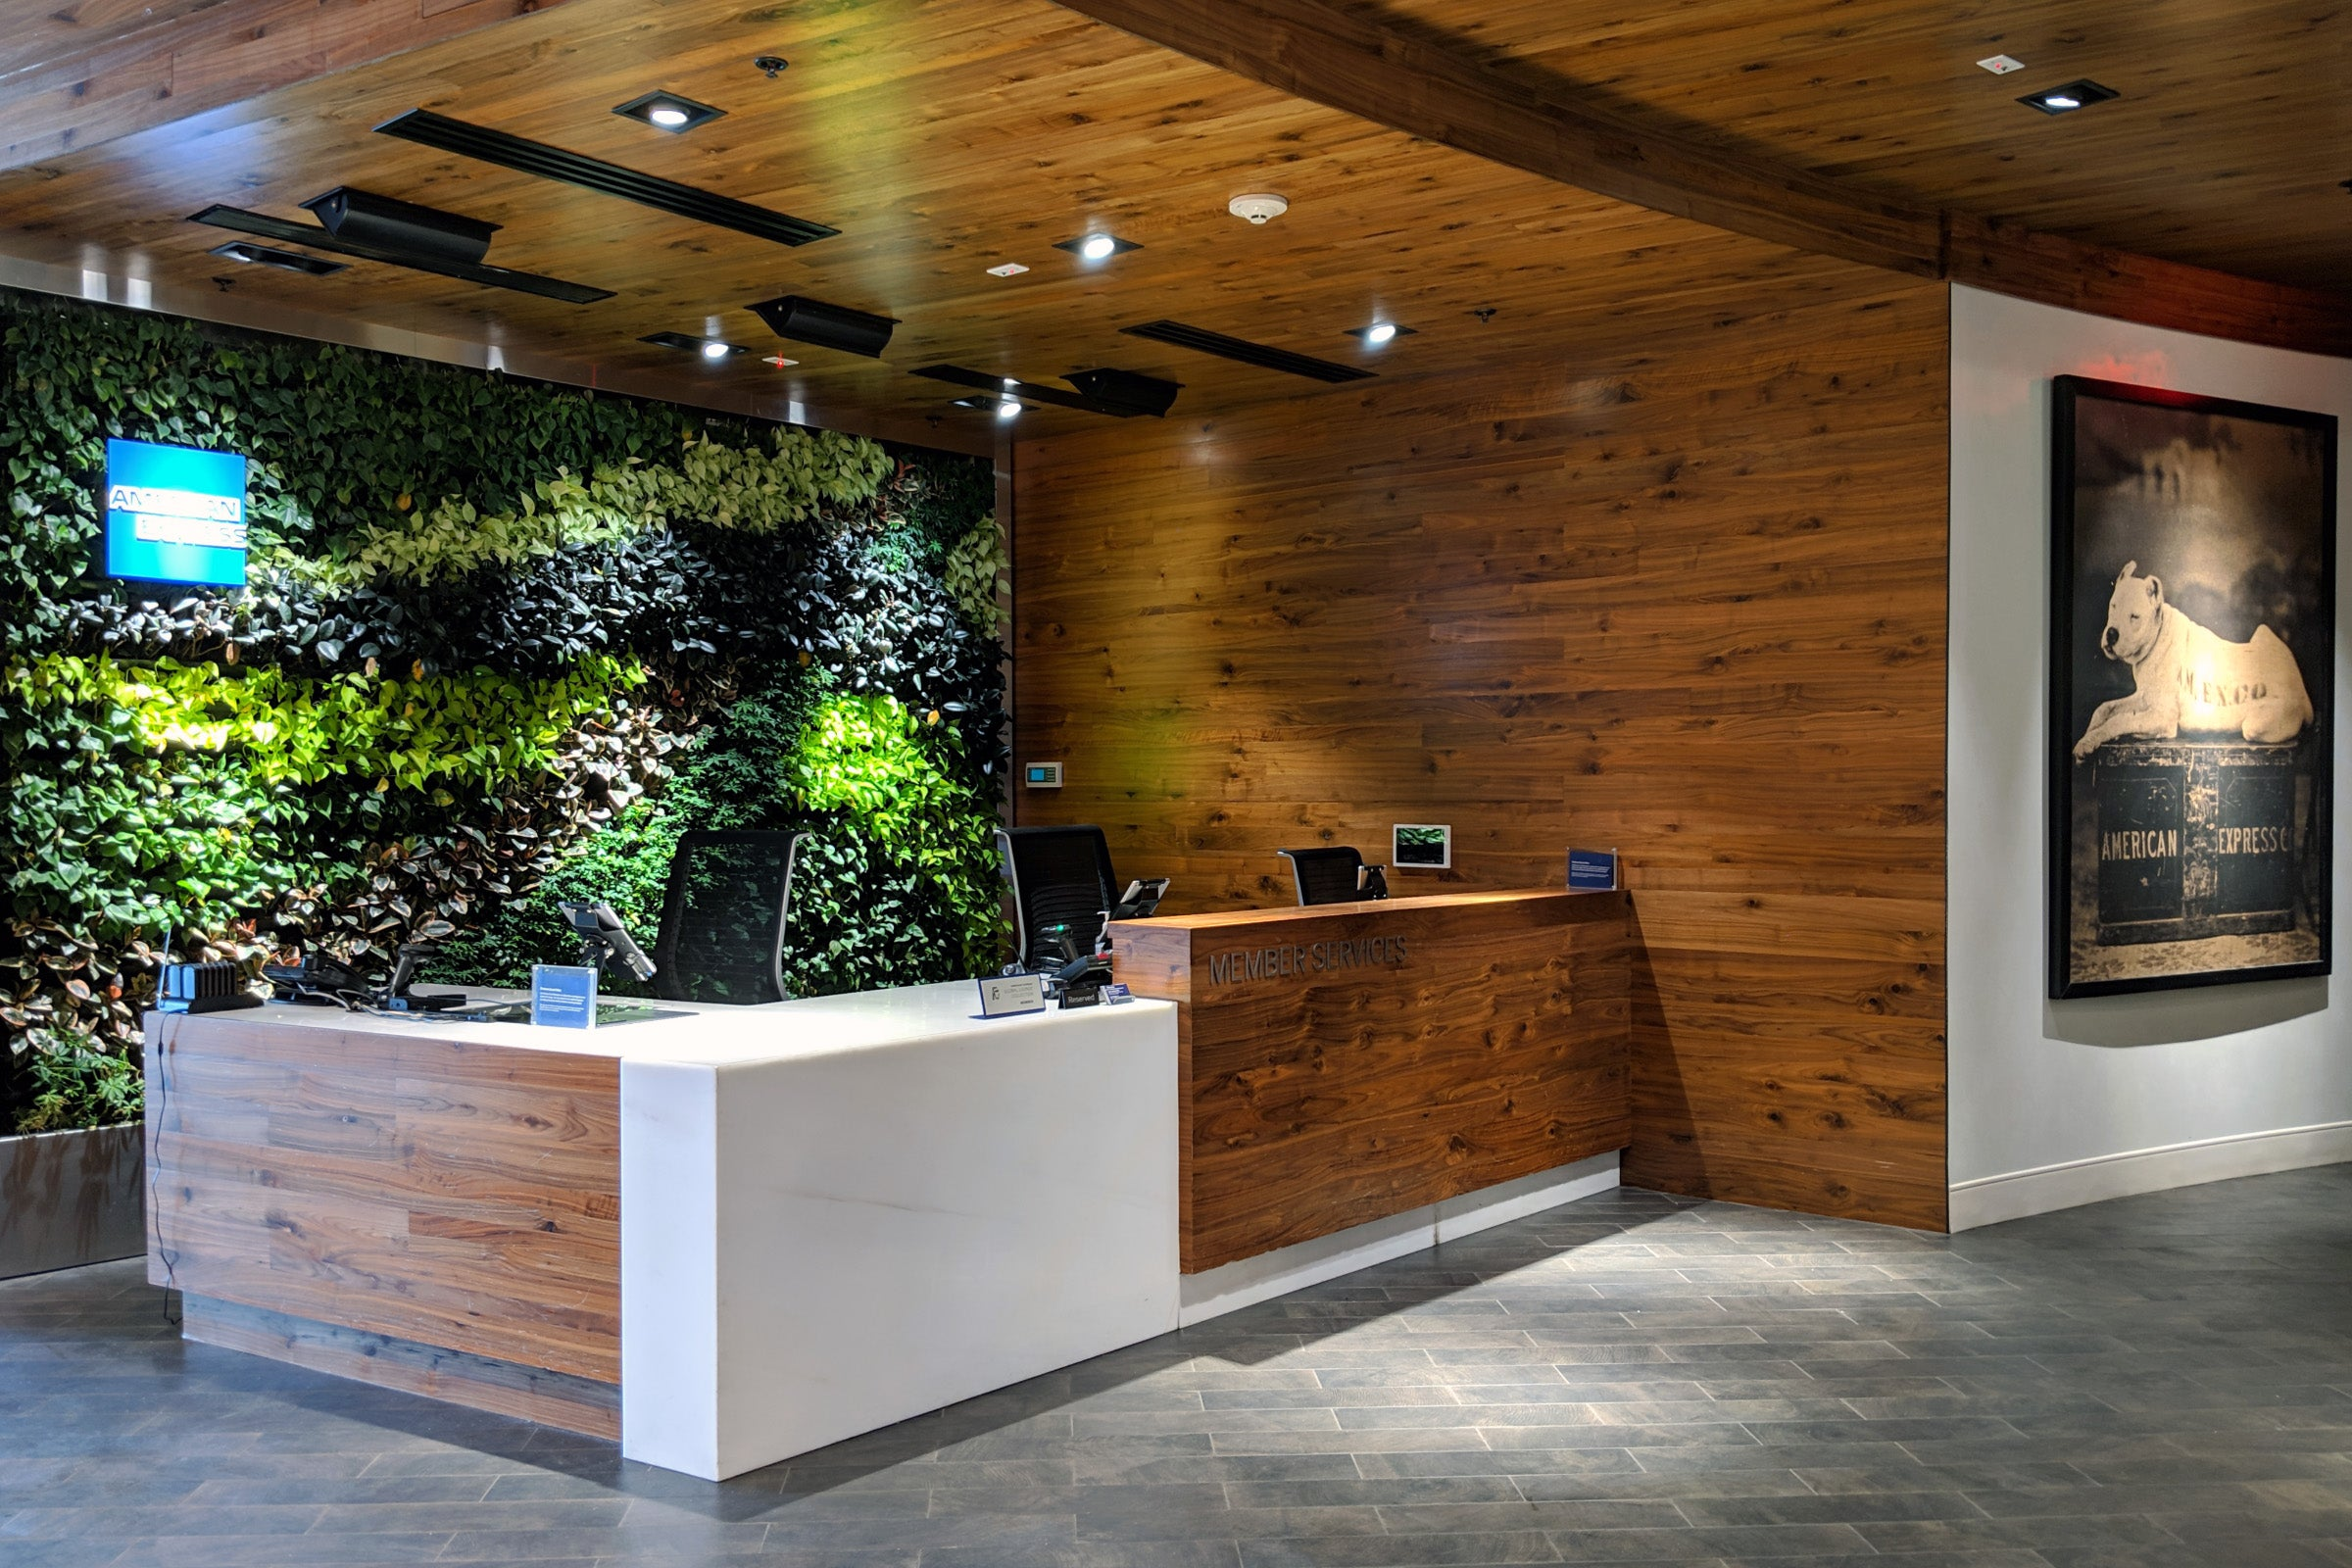 Amex reveals updated opening dates for new Centurion Lounges